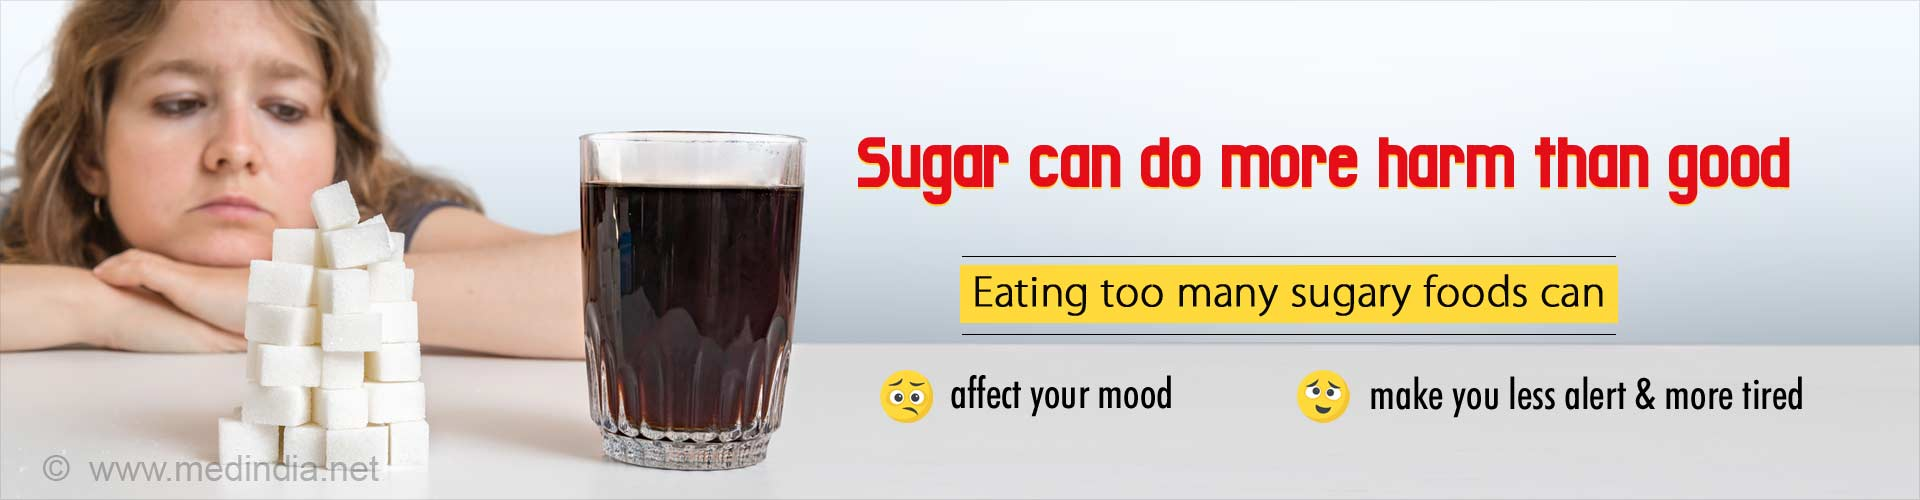 Too Much Sugar is Bad for Your Mood